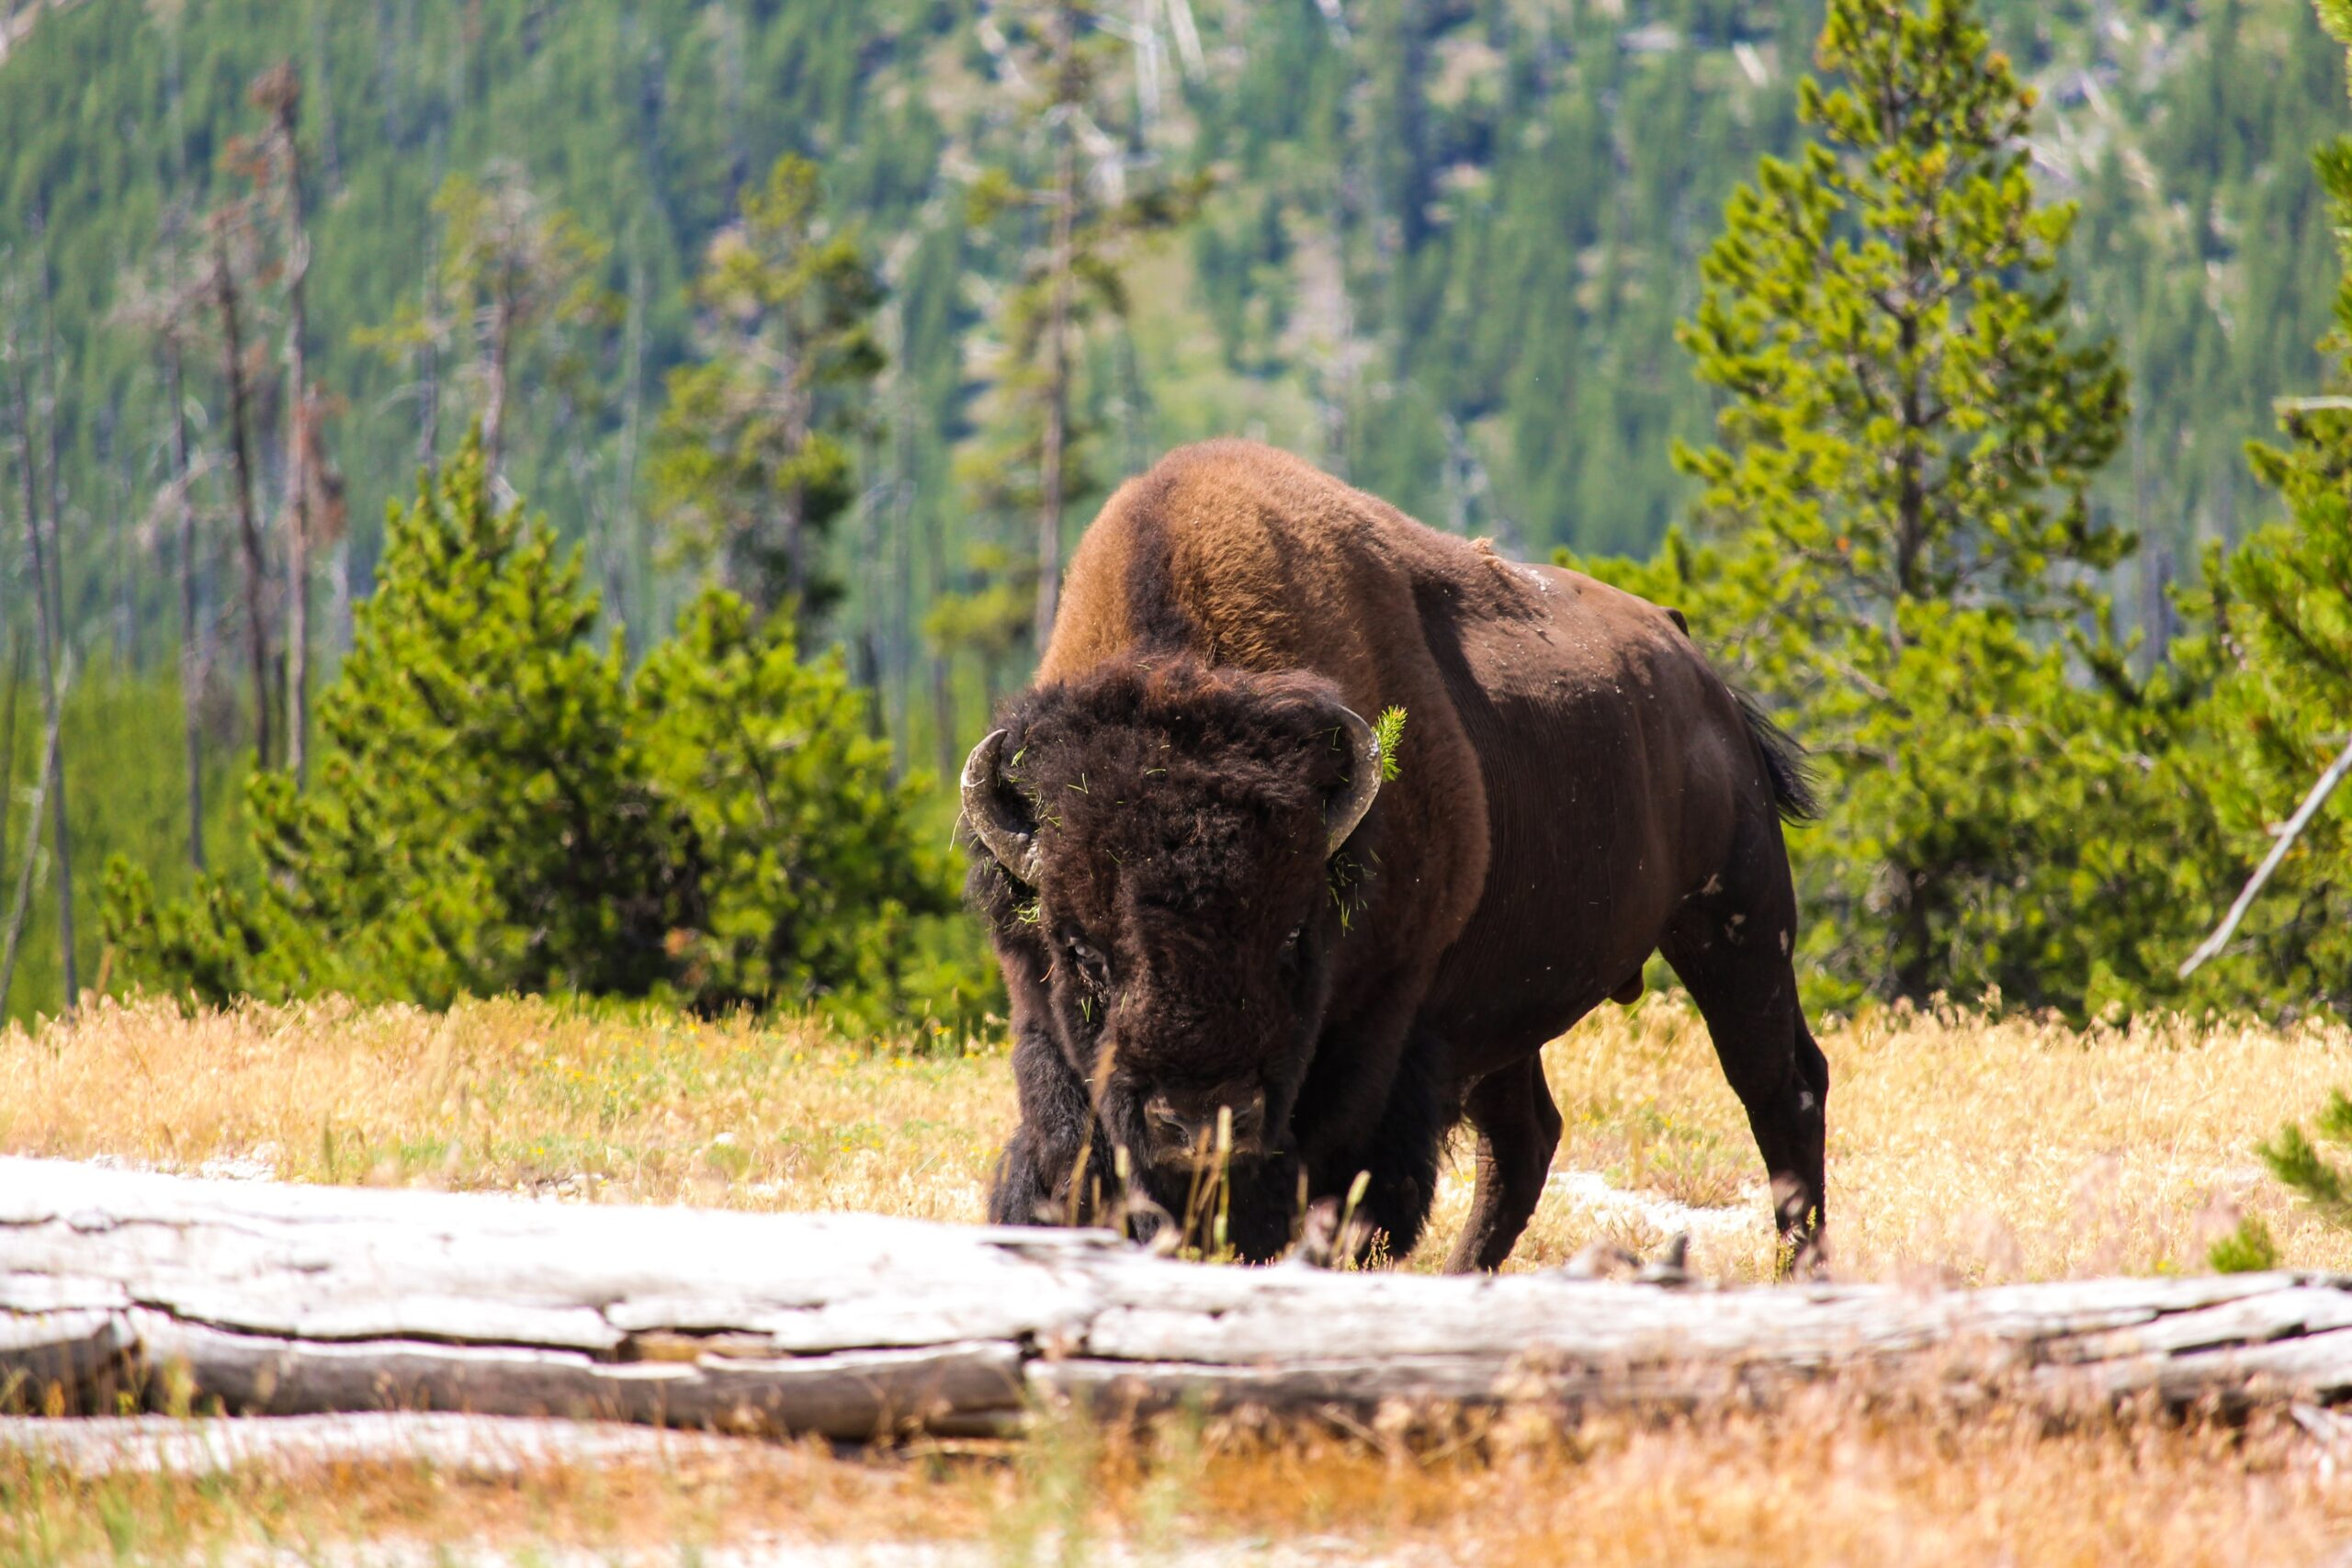 A bison at Yellowstone National Park